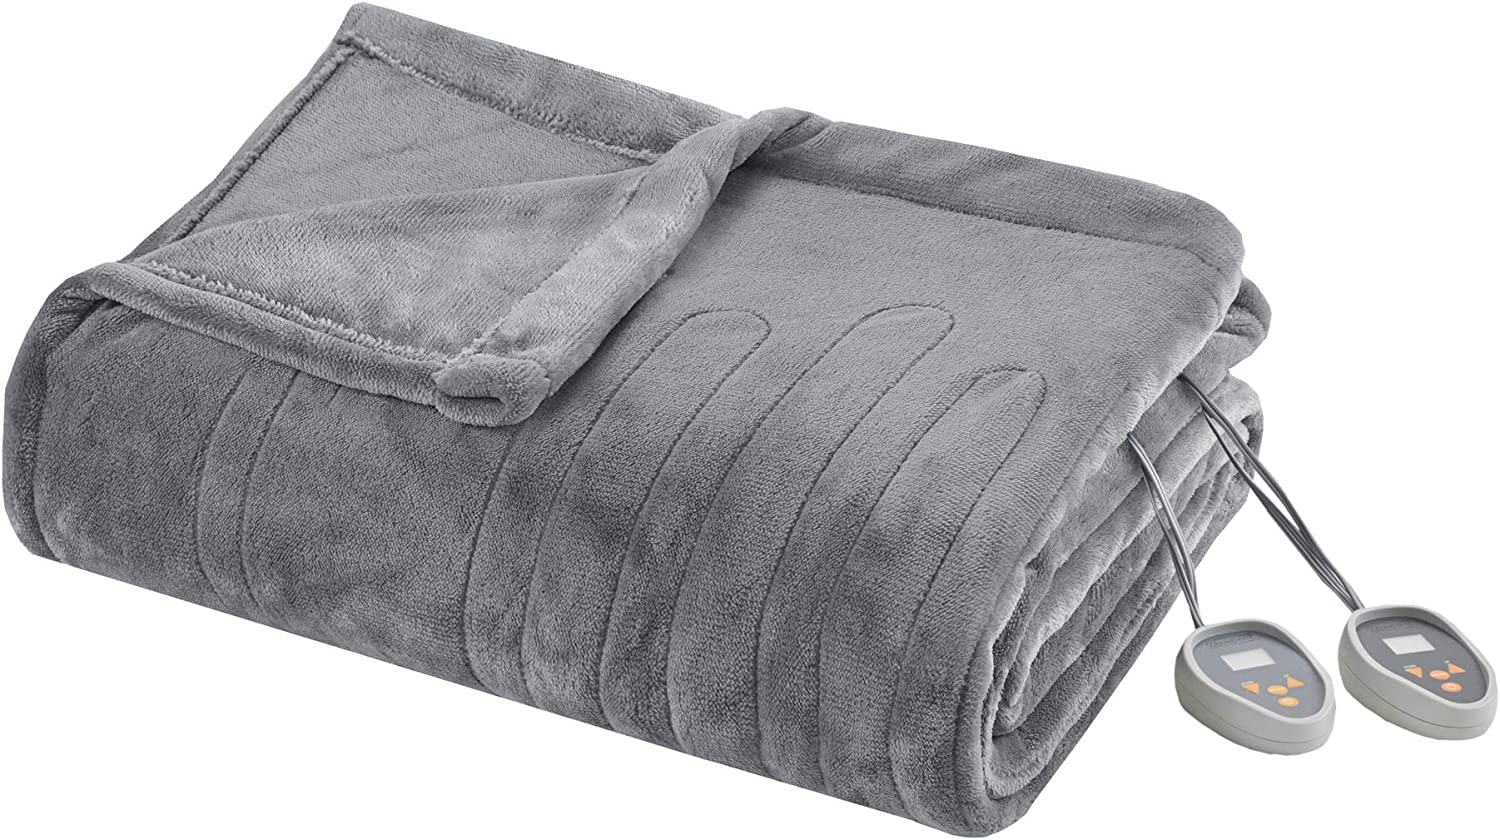 Beautyrest Elect Electric Blanket with 20 Heat Level Setting Controller, Twin, Grey